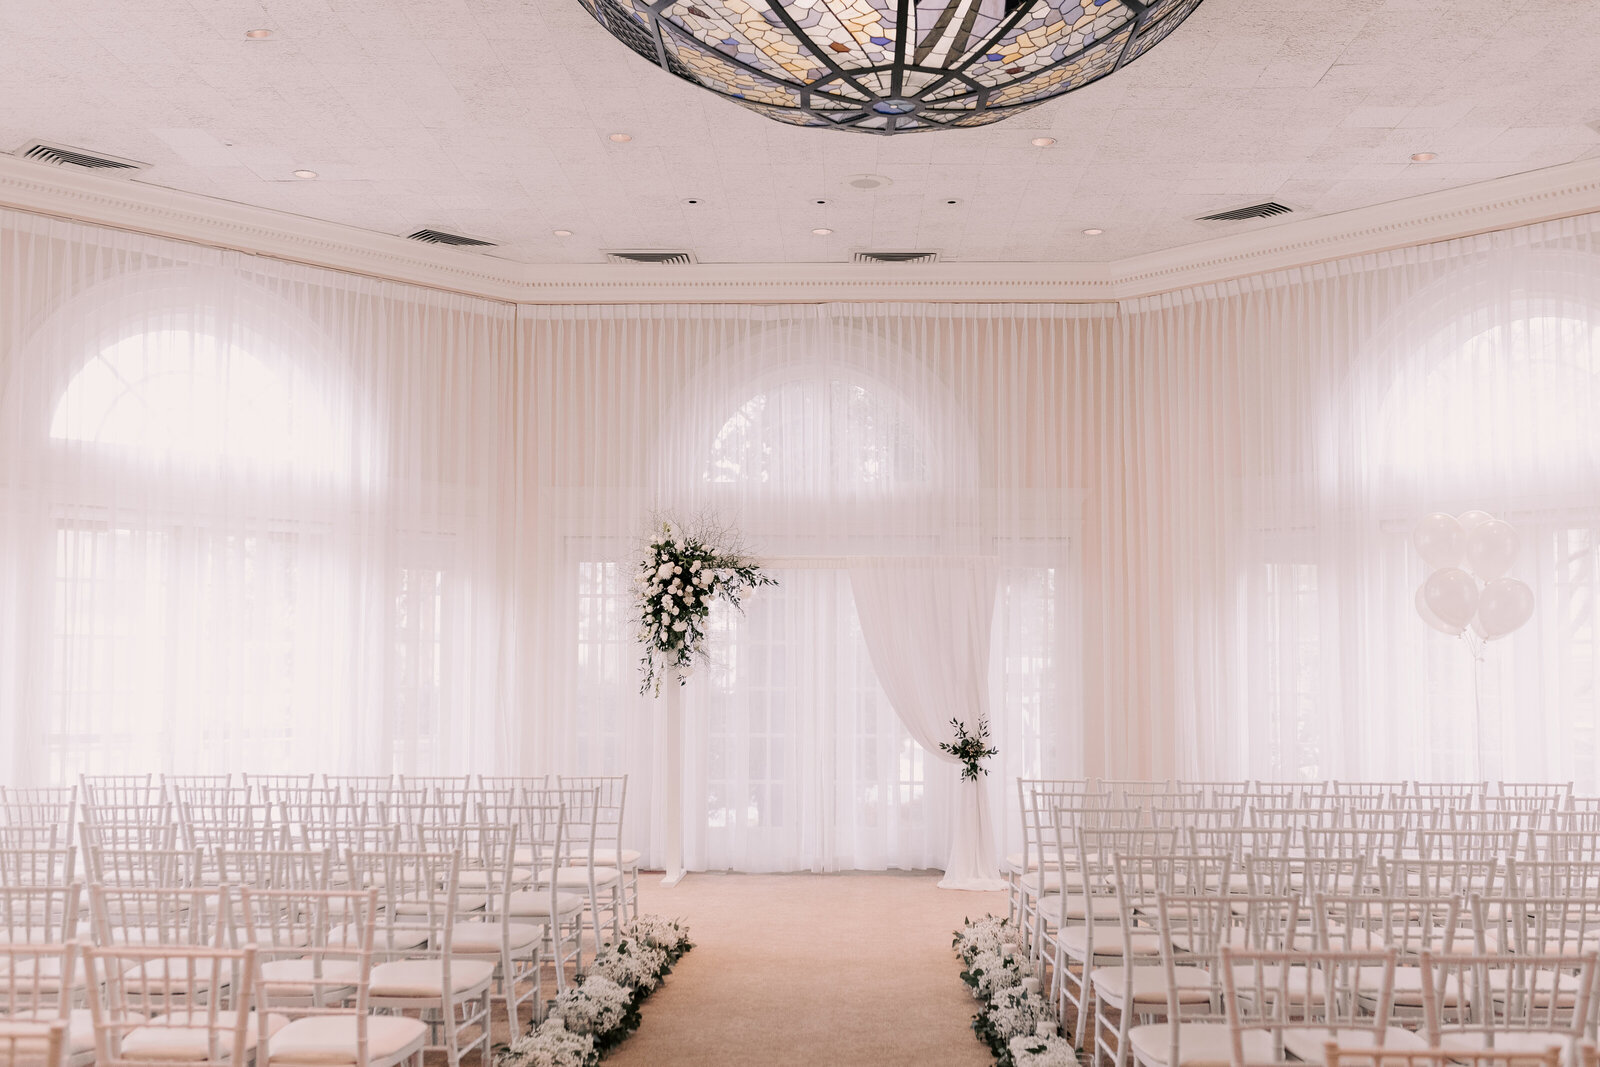 Vizcaya's drapes elegantly fall from the ceiling in front of the floor to ceiling windows, allowing soft hits of light to seep through.